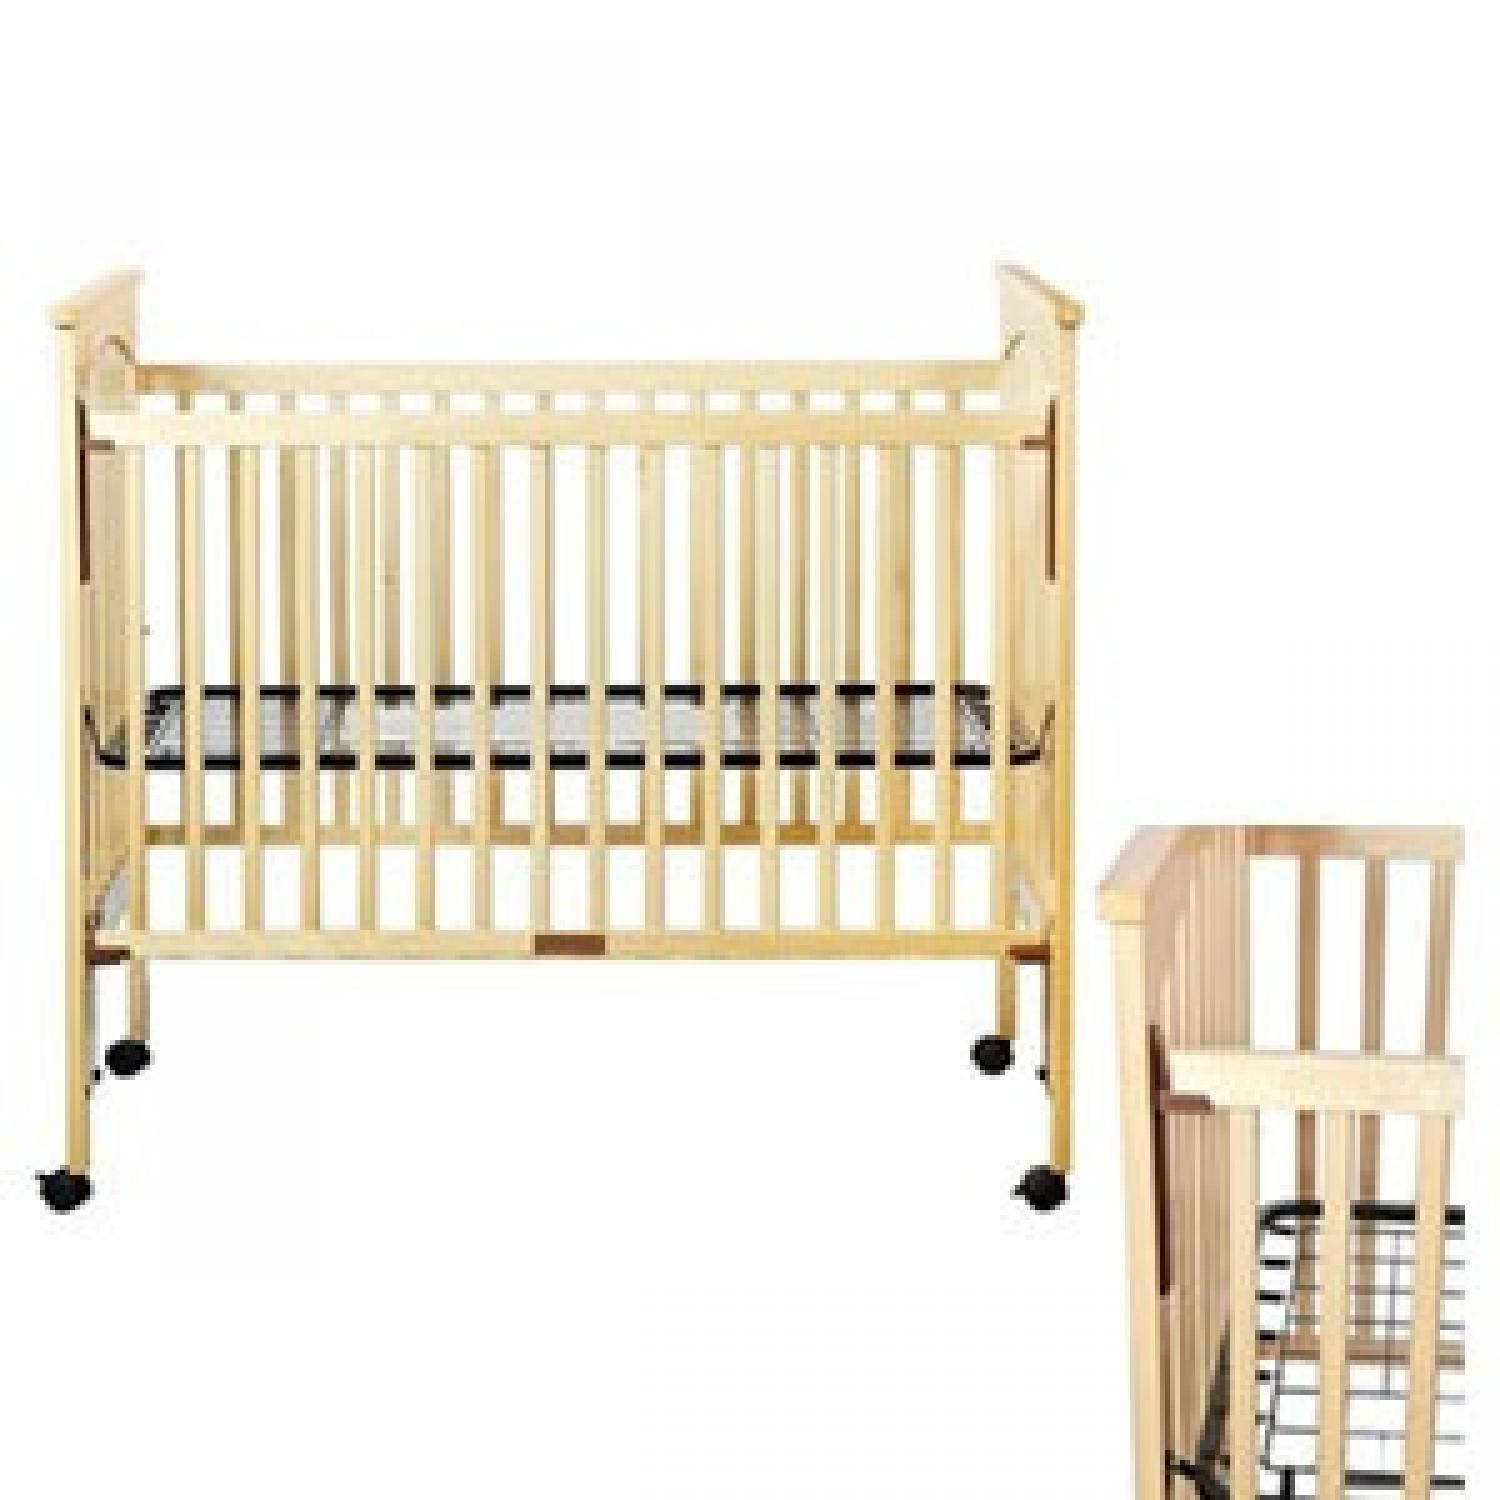 Jardine crib for sale - Baby Bed Instructions Baby Bed Instructions 3